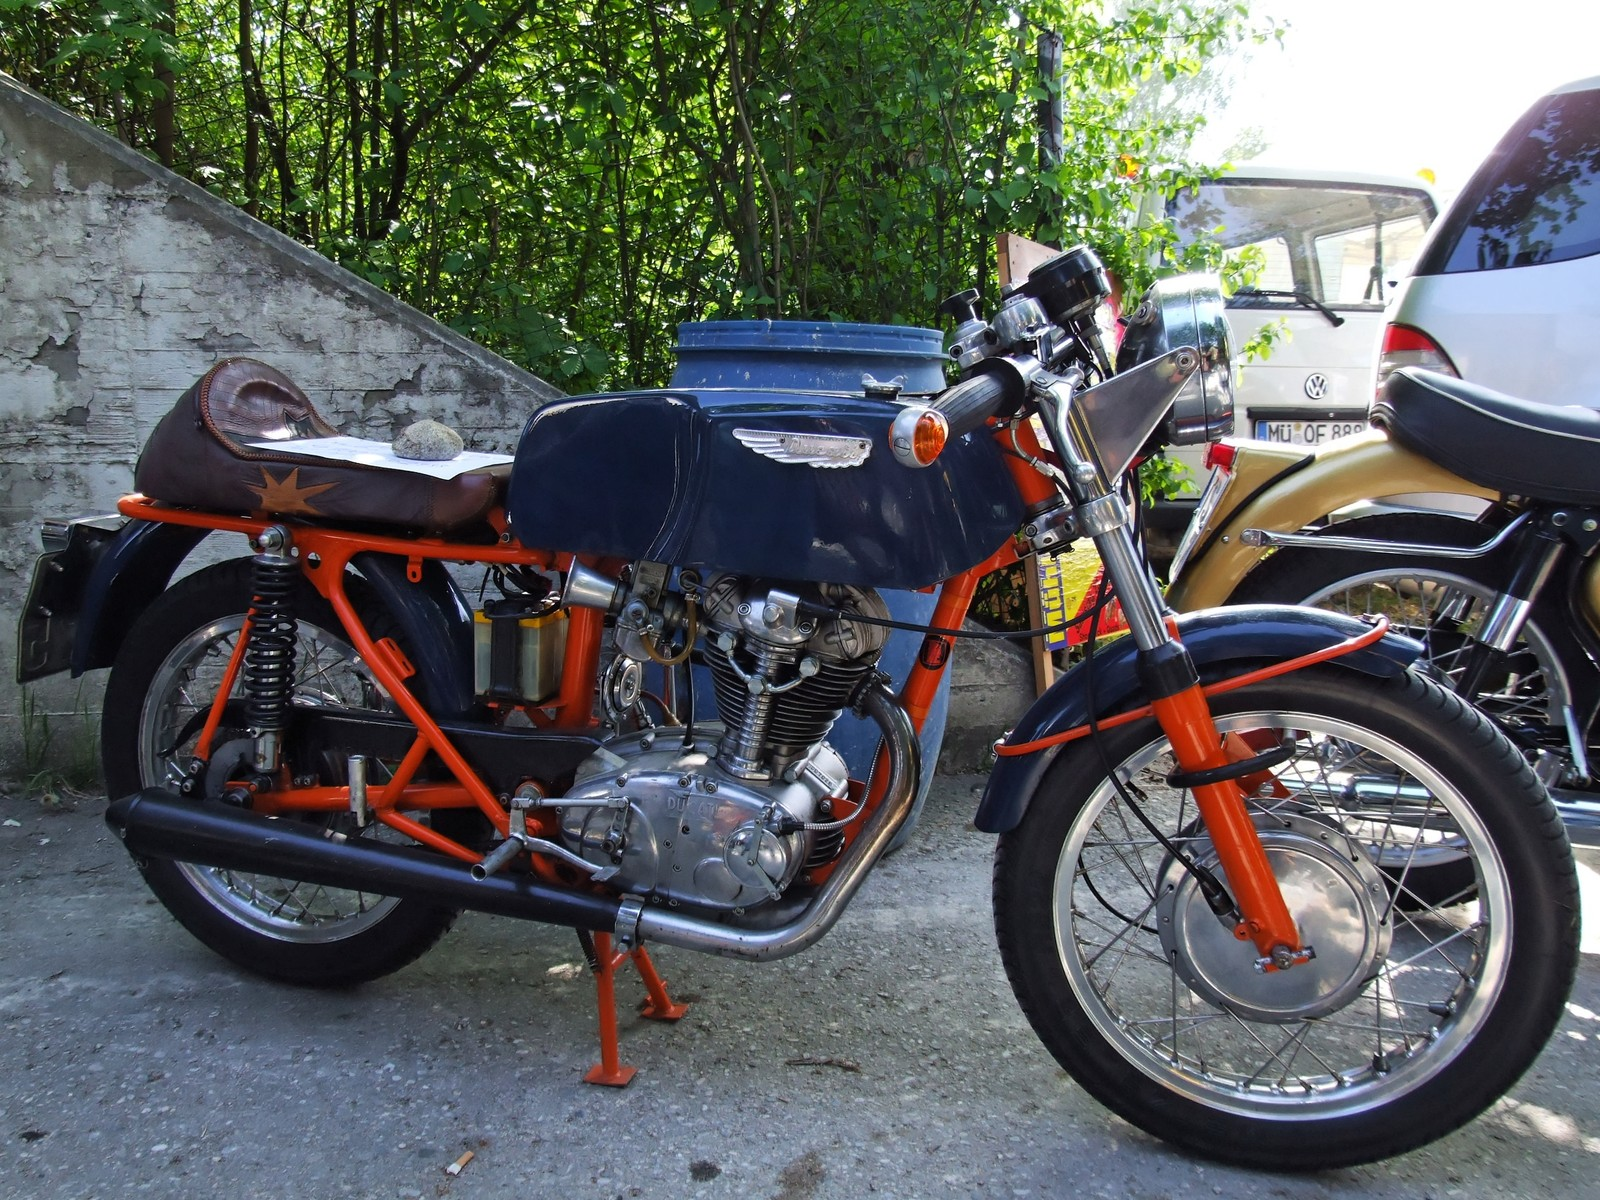 Ducati 450 Mark 3 1971 images #148081